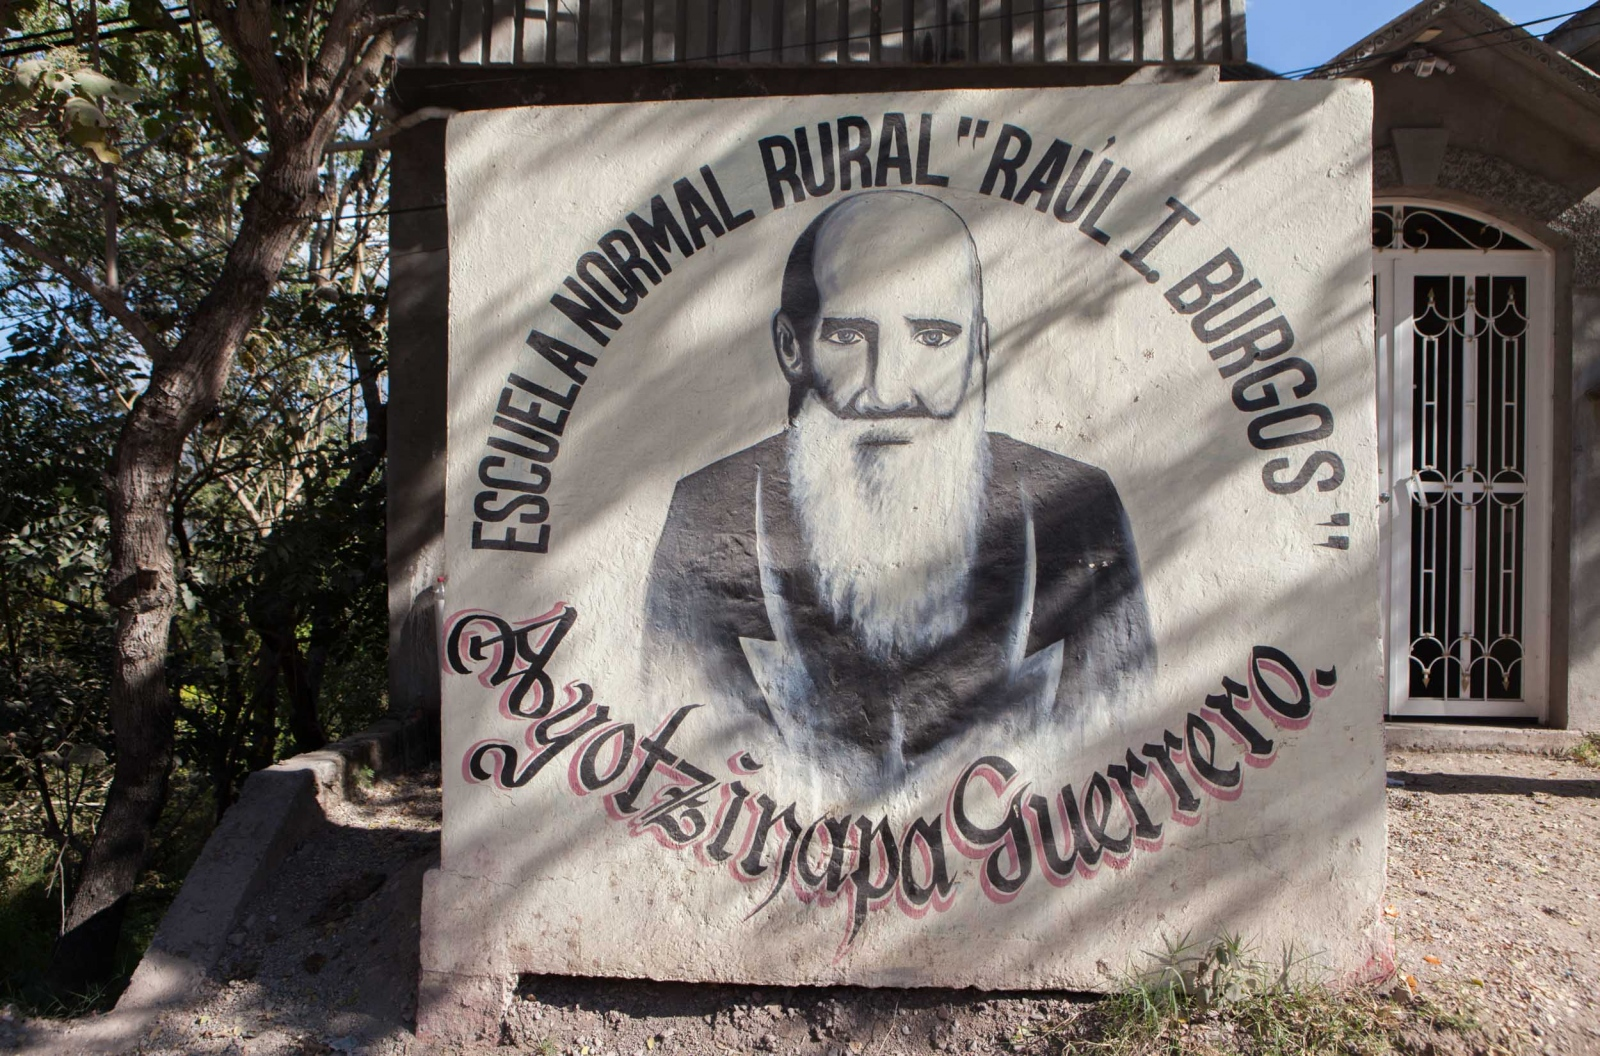 Image of Raul Isidro Burgos, a Mexican poet and teacher and the second pricipal of the Rural Teachers school of Ayotzinapa, at the entrance of the school territory. // Imagen de Raul Isidro Burgos, poeta, maestro y segundo director de la Normal Rural de Ayotzinapa, en la entrada principal de la escuela.